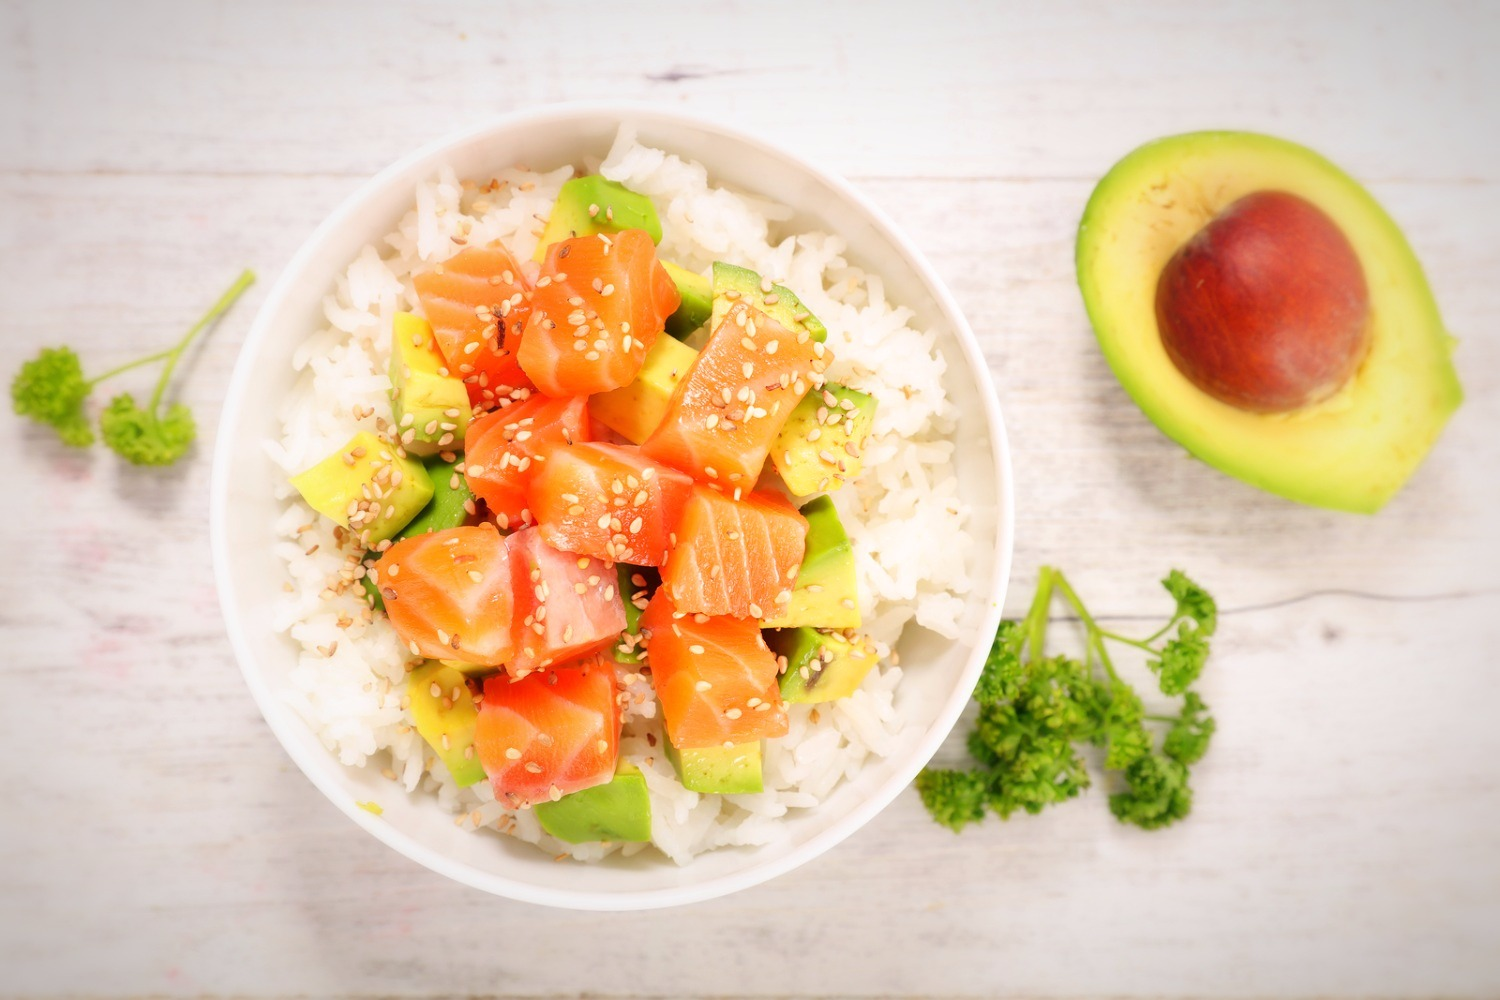 bigstock-bowl-with-rice-avocado-and-sal-183323743_edited_edited